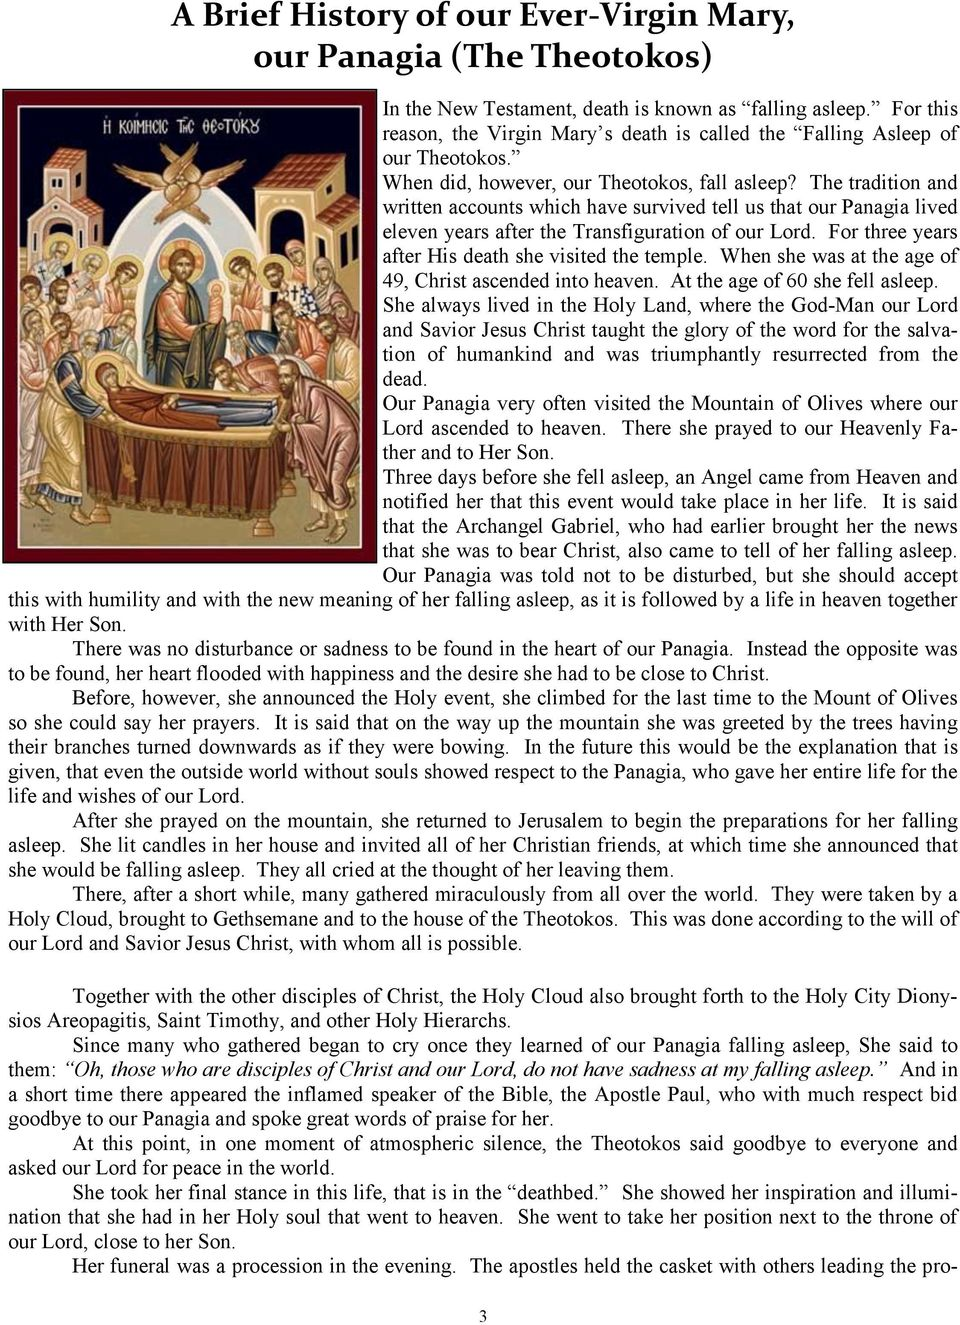 The tradition and written accounts which have survived tell us that our Panagia lived eleven years after the Transfiguration of our Lord. For three years after His death she visited the temple.